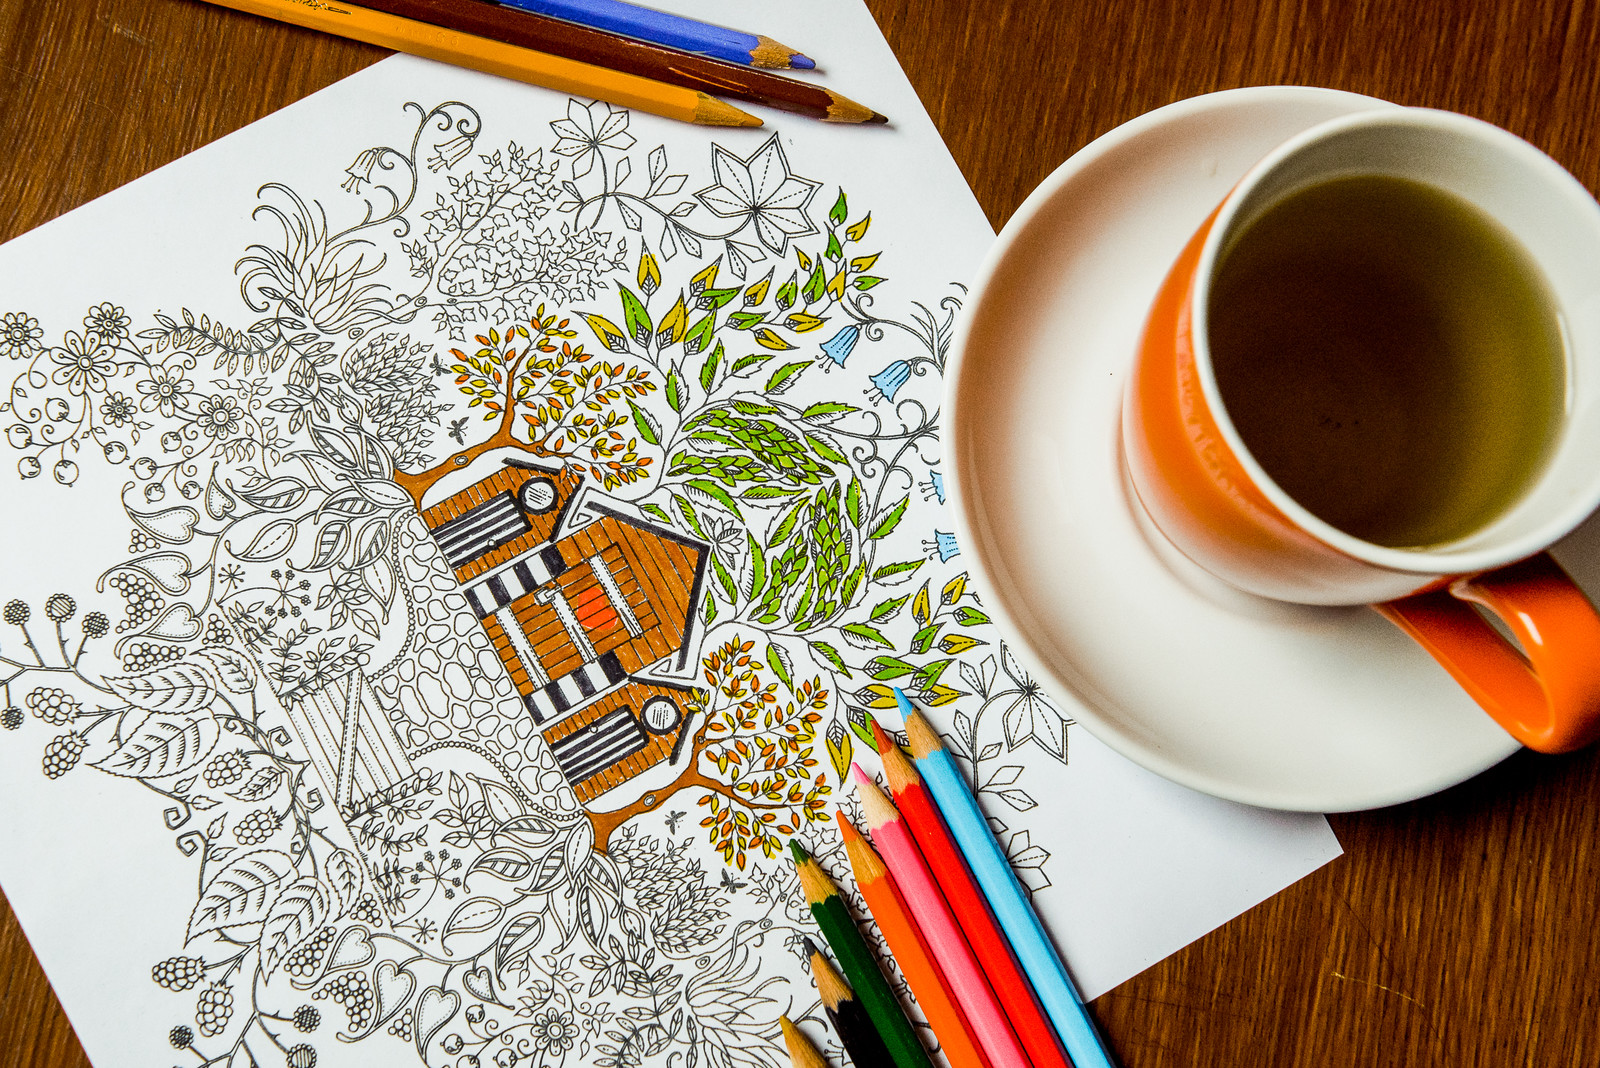 Partially colored adult coloring page with an image of three tiny houses surrounded by leaves and flowers. A cup of tea sitting on the corner of the page and colored pencils sitting on the edge of the sheet